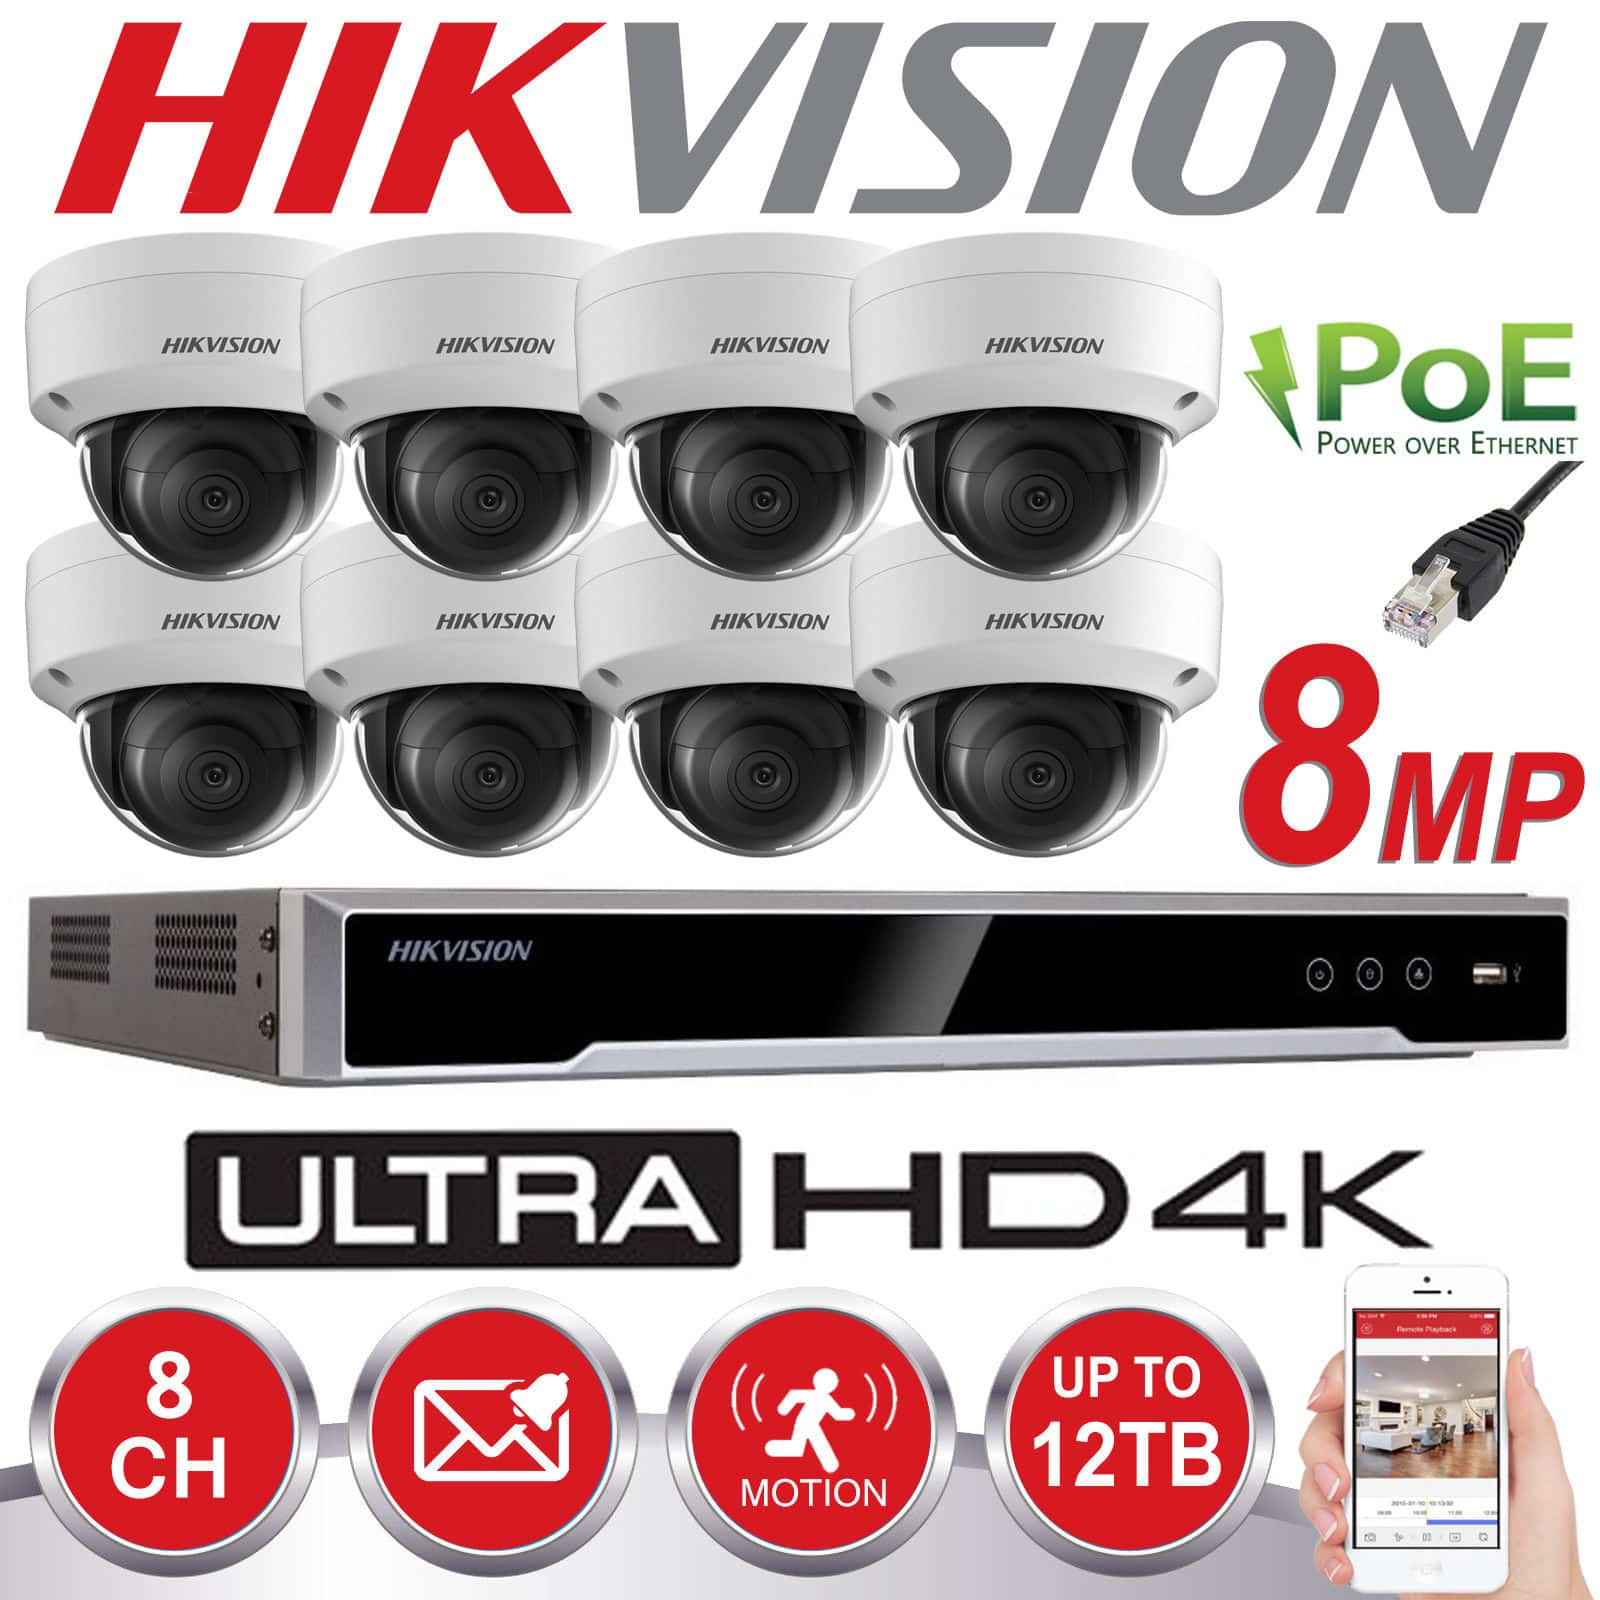 Hikvision 8mp Cctv System Ip Poe 8ch Channel 4k Uhd